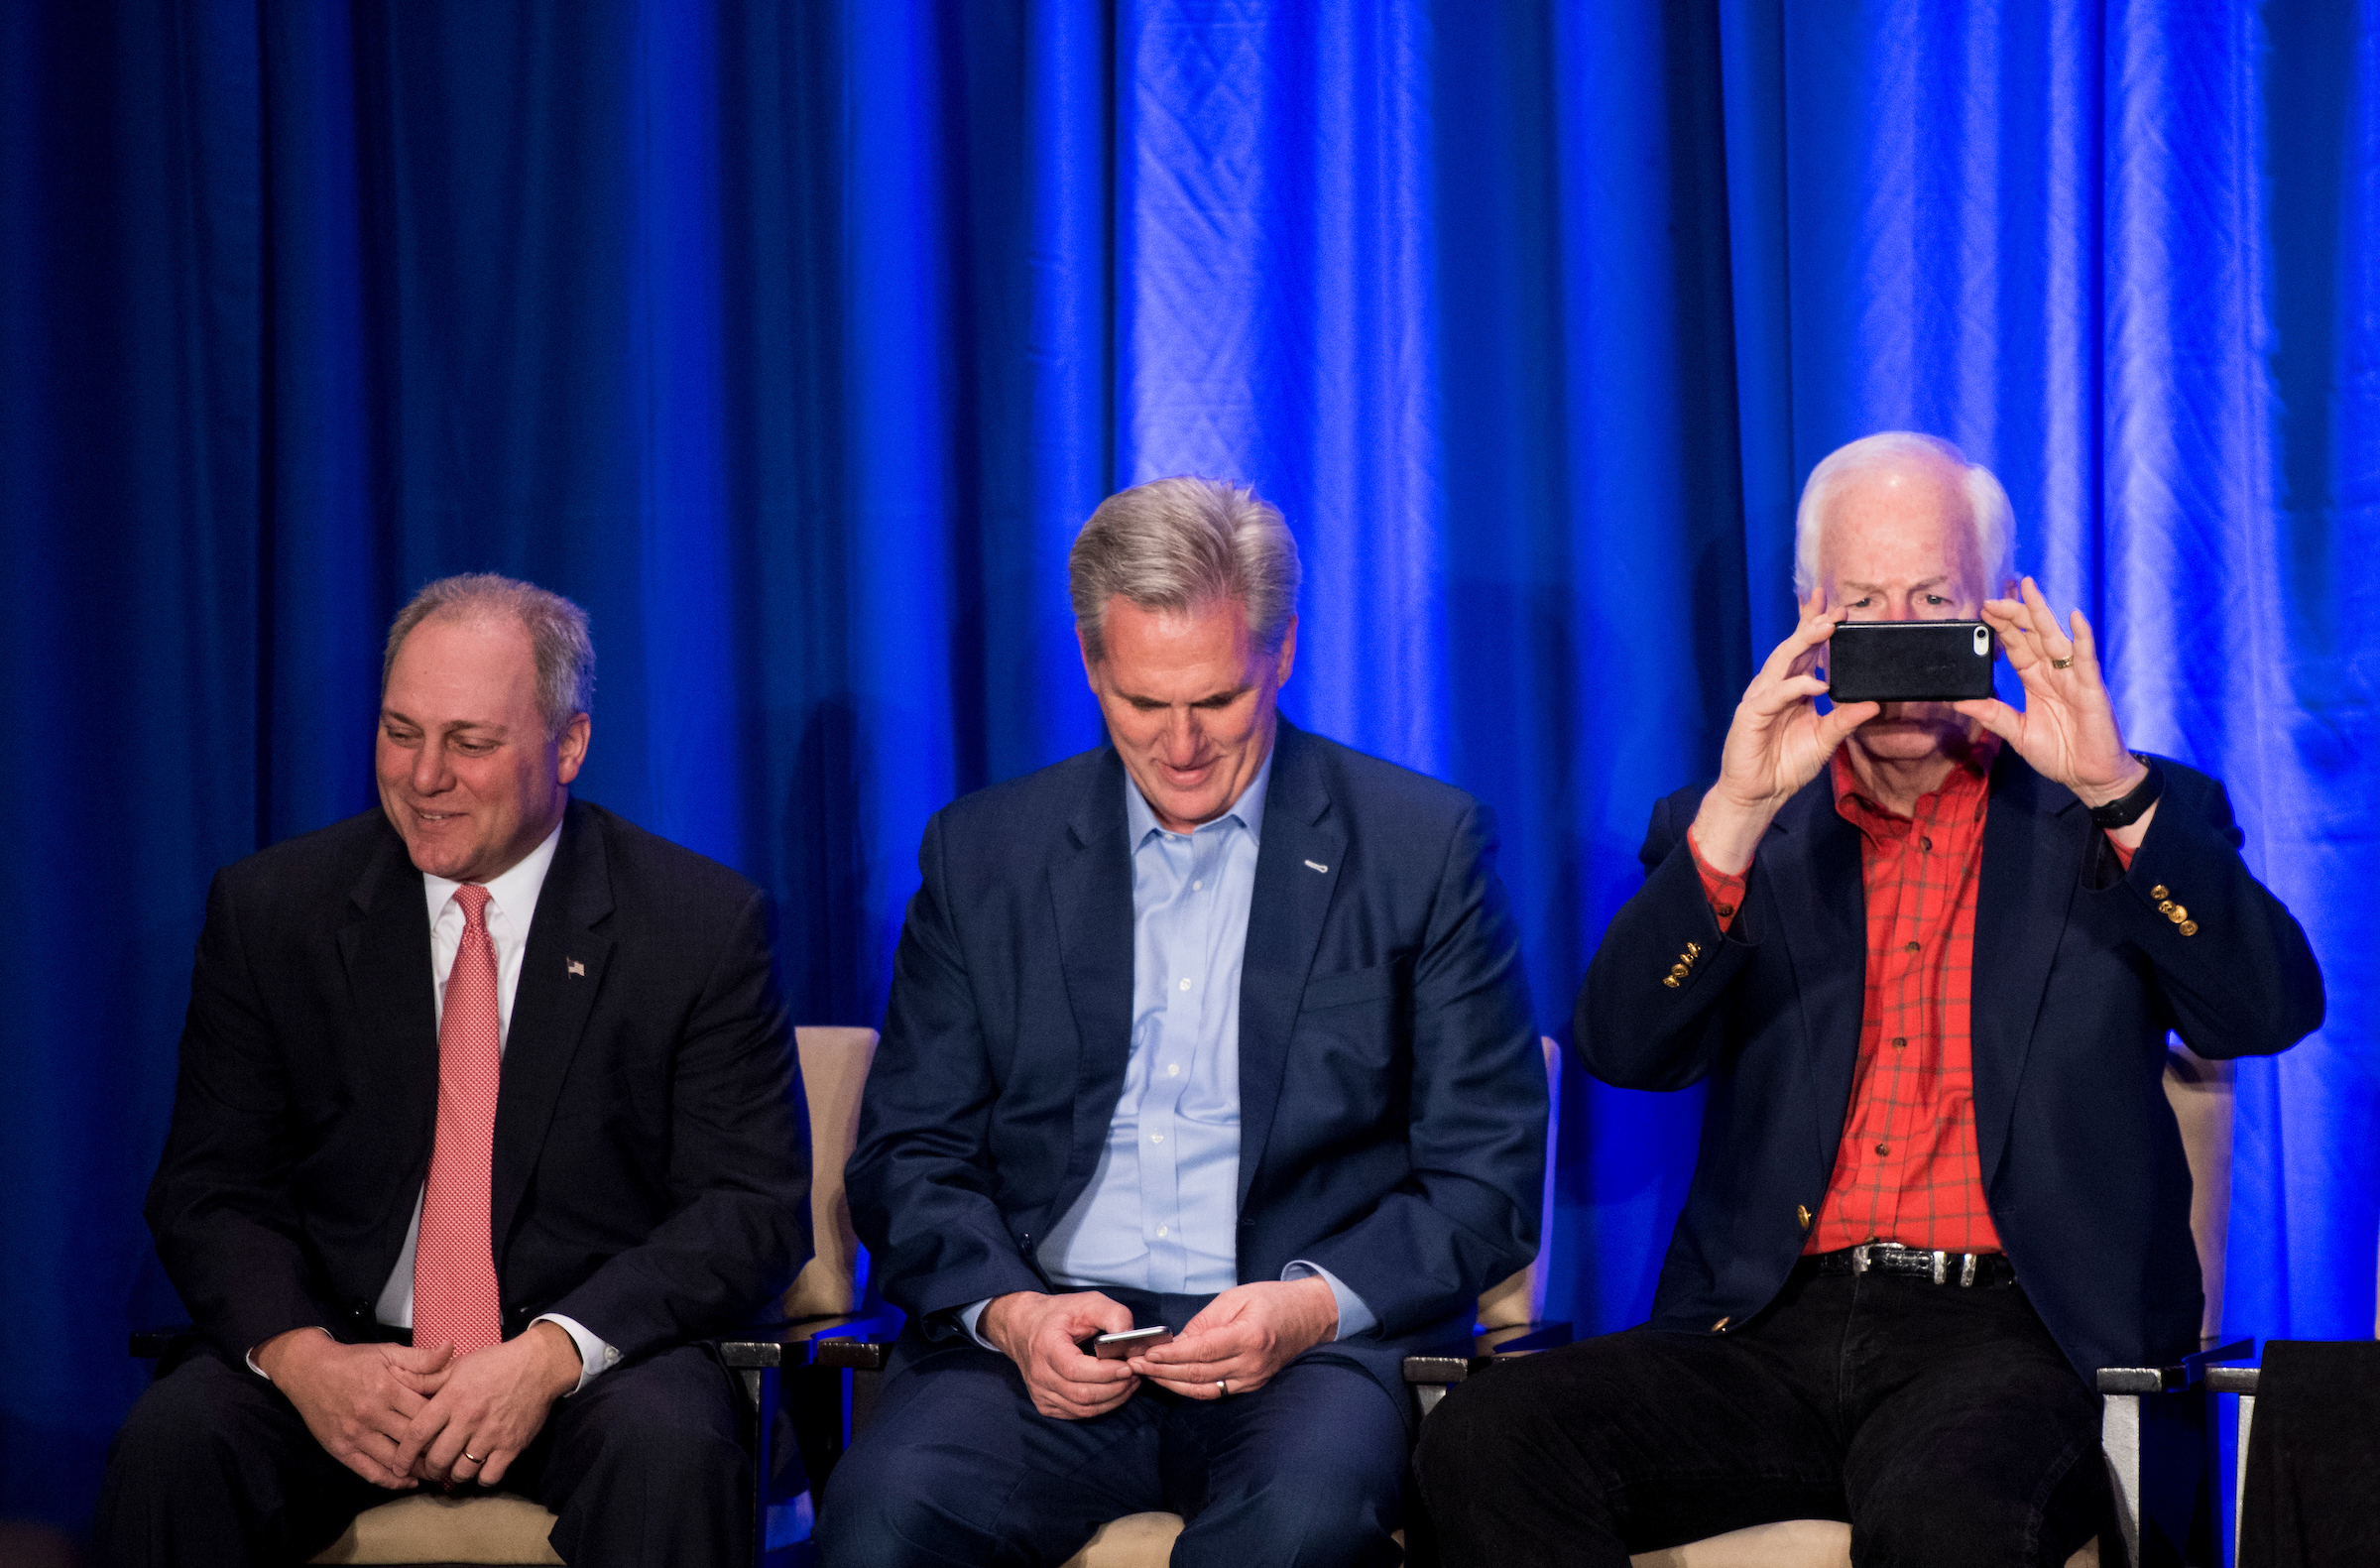 UNITED STATES - JANUARY 26: From left, House Majority Whip, Steve Scalise, R-La., House Majority Leader Kevin McCarthy, R-Calif., and Sen. John Cornyn, R-Texas, sit on stage while waiting for President Donald Trump to address the GOP retreat in Philadelphia on Thursday, Jan. 26, 2017. House and Senate Republicans are holding their retreat through Friday in Philadelphia. (Photo By Bill Clark/CQ Roll Call)